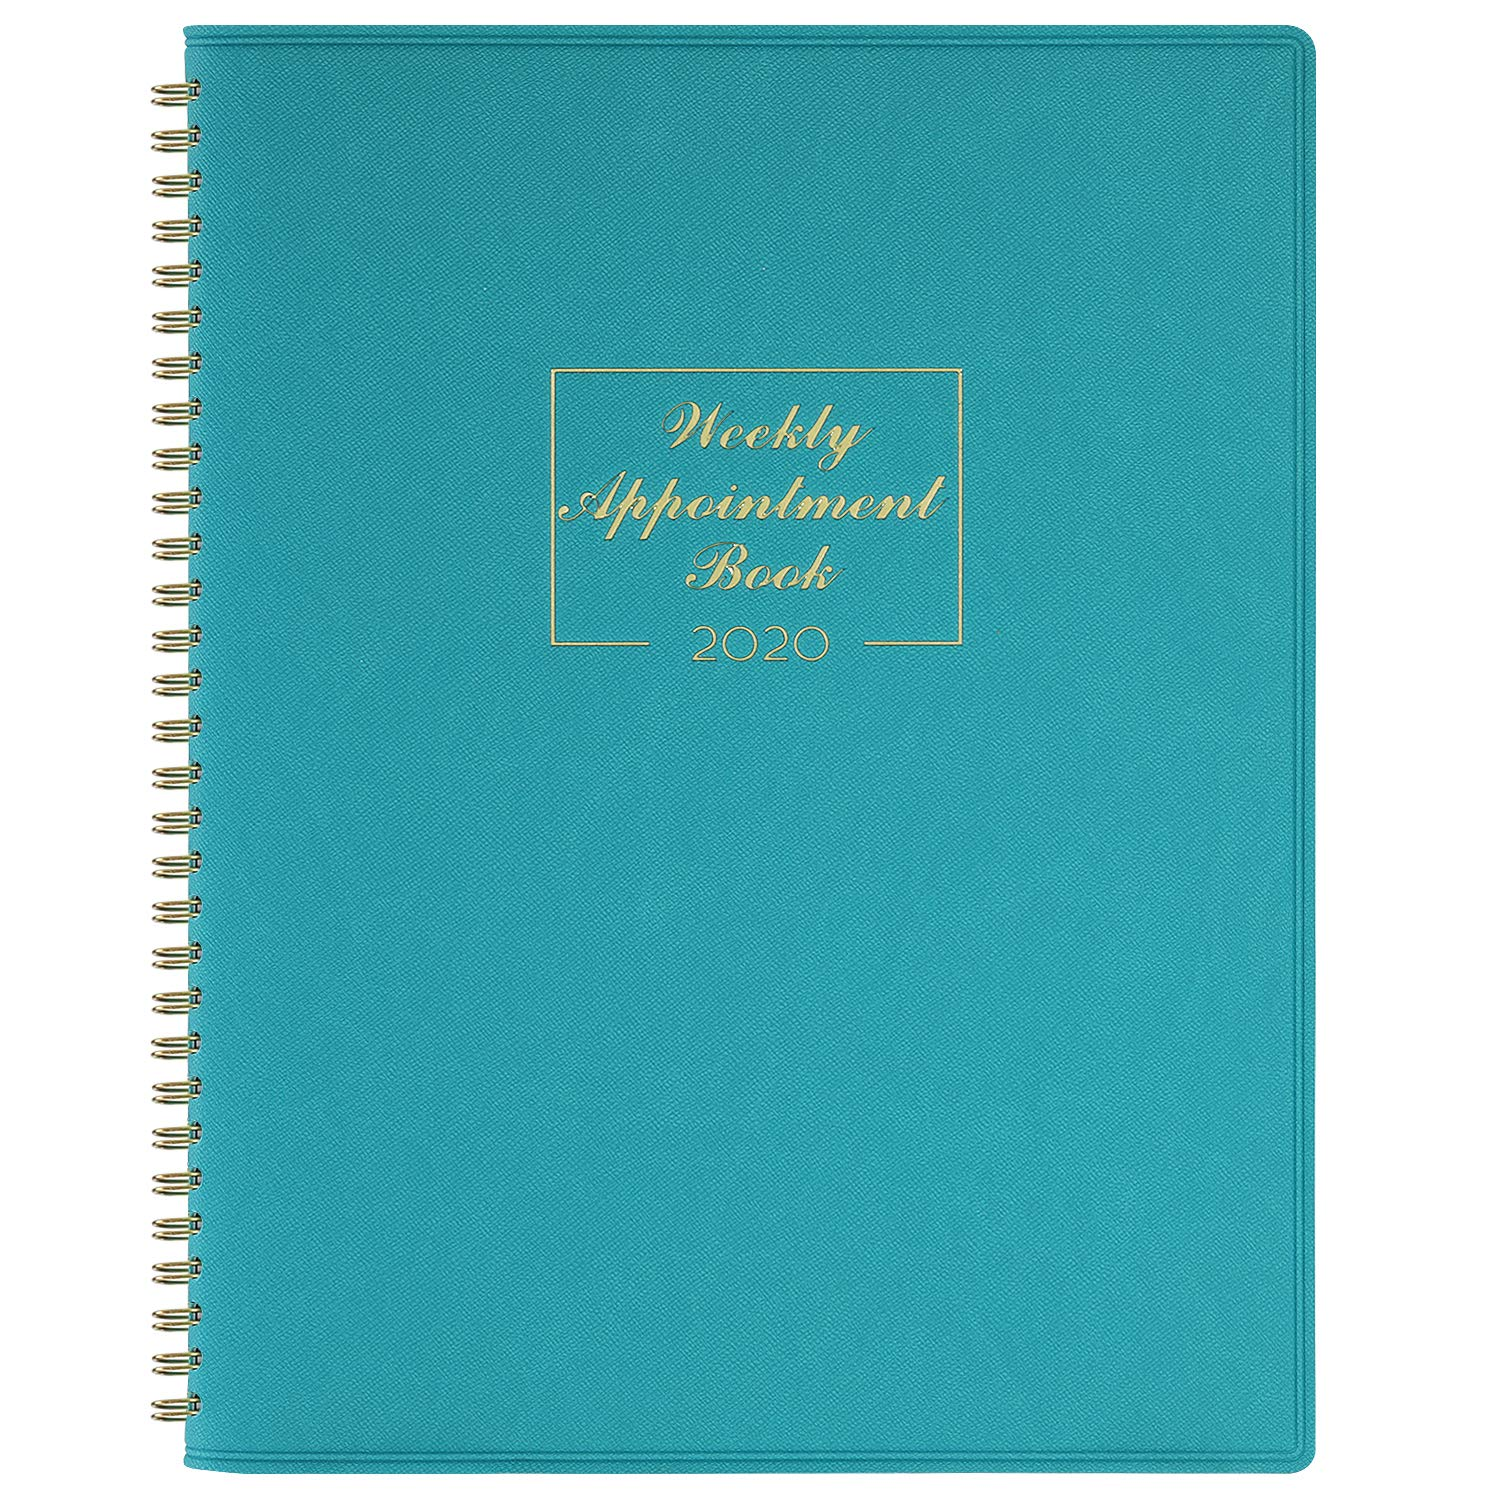 2020-2021 Weekly Appointment Book & Planner – 2020-2021 Daily Hourly Planner 8.4″ x 10.6″, Jul 2020 – Jun 2021, 15-Minute Interval, Flexible Soft Cover, Twin-Wire Binding, Lay – Flat, Turquoise